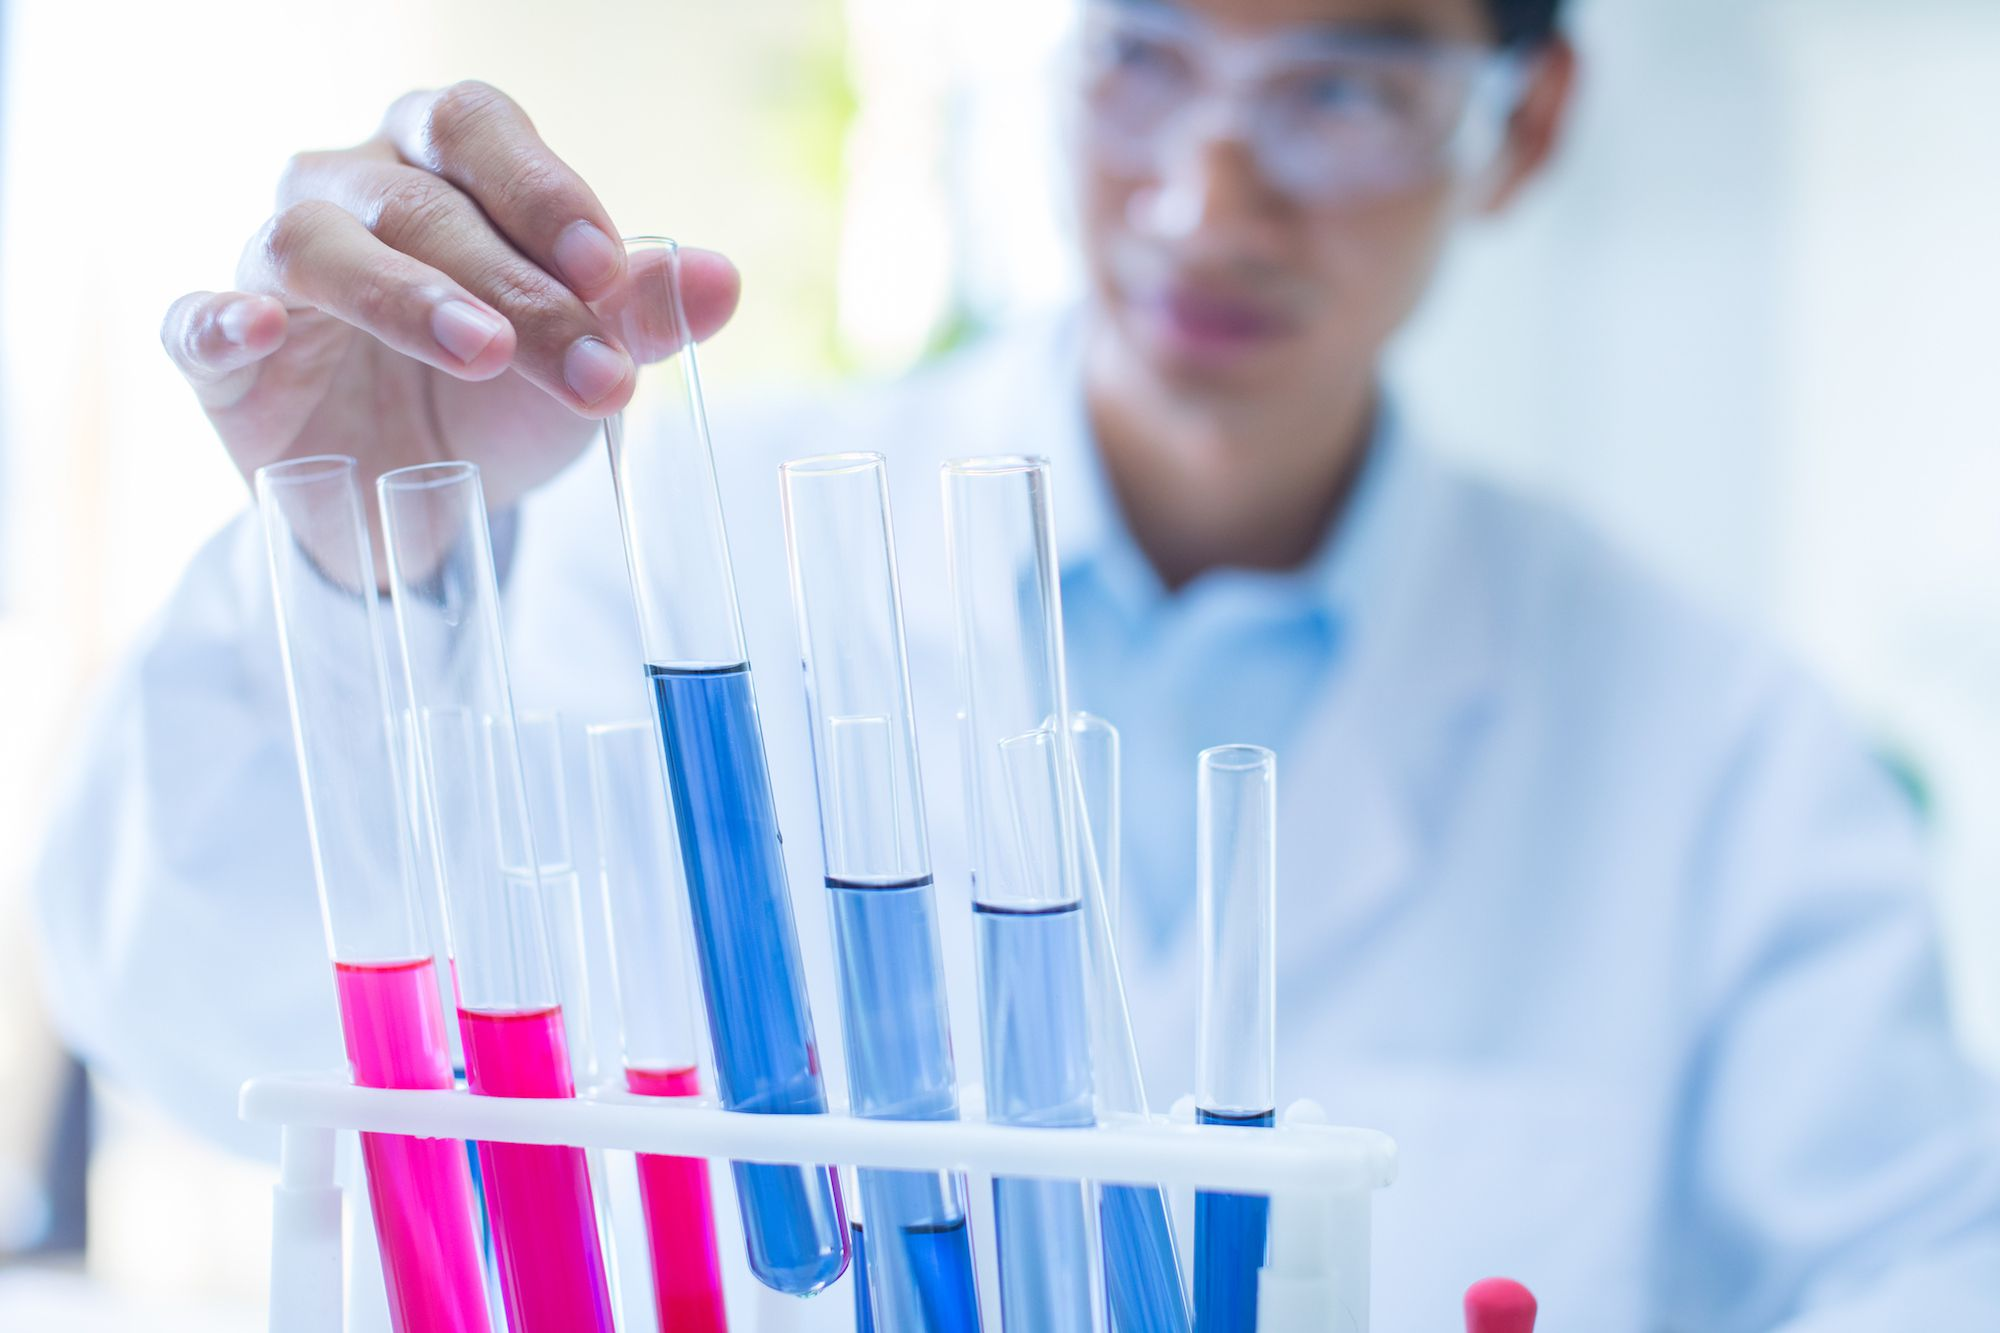 Galectin Therapeutics (GALT) Stock Hits New Highs: Up 150% in a Month